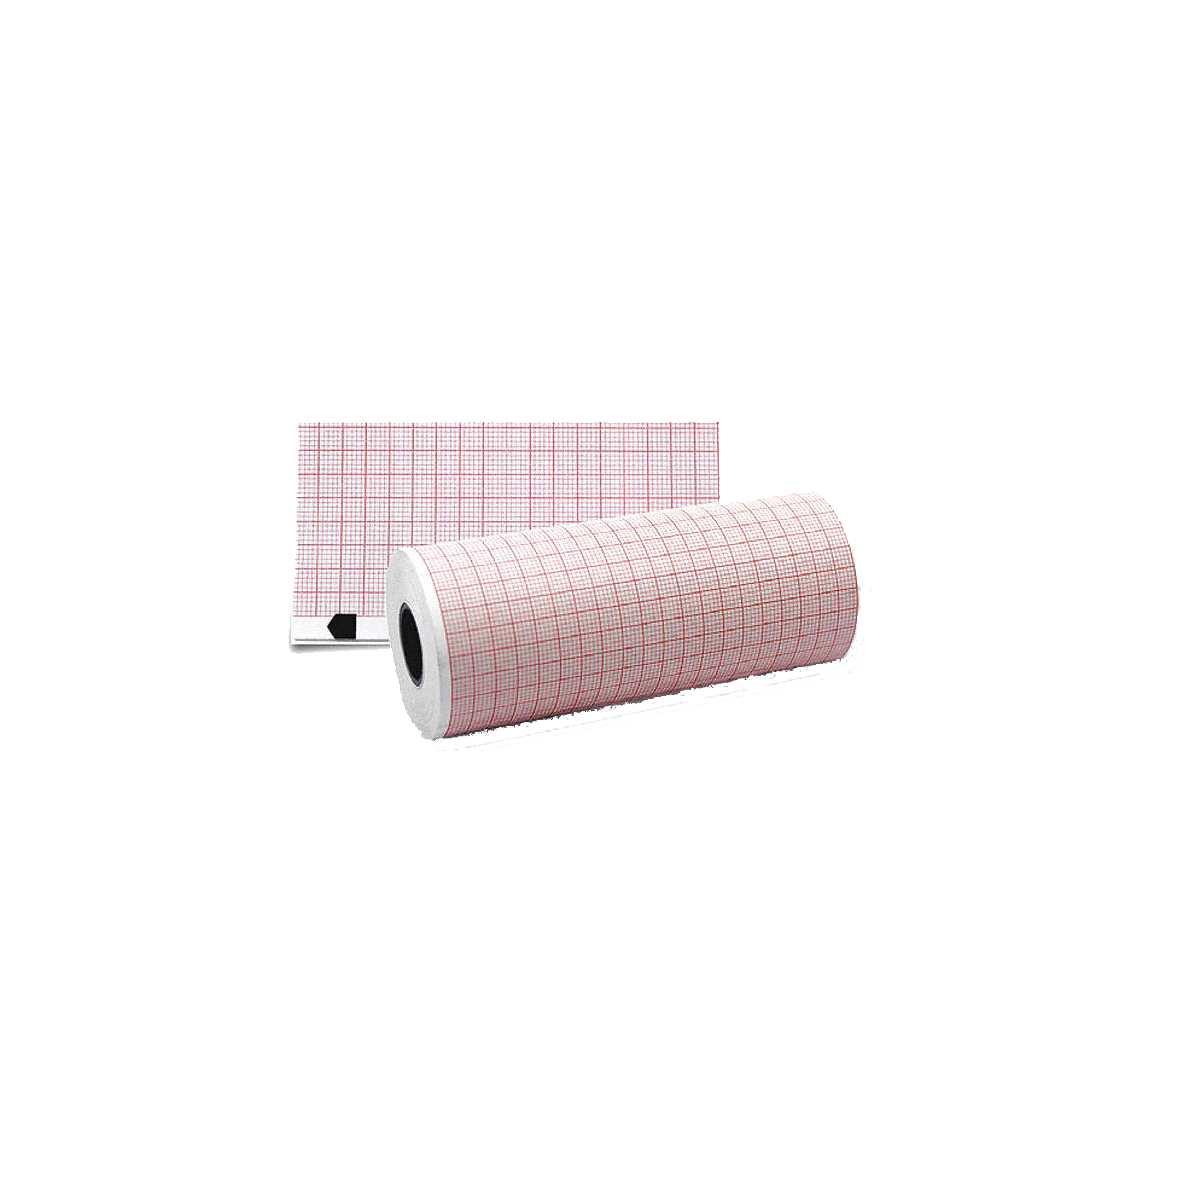 Electrocardiograph paper rolls